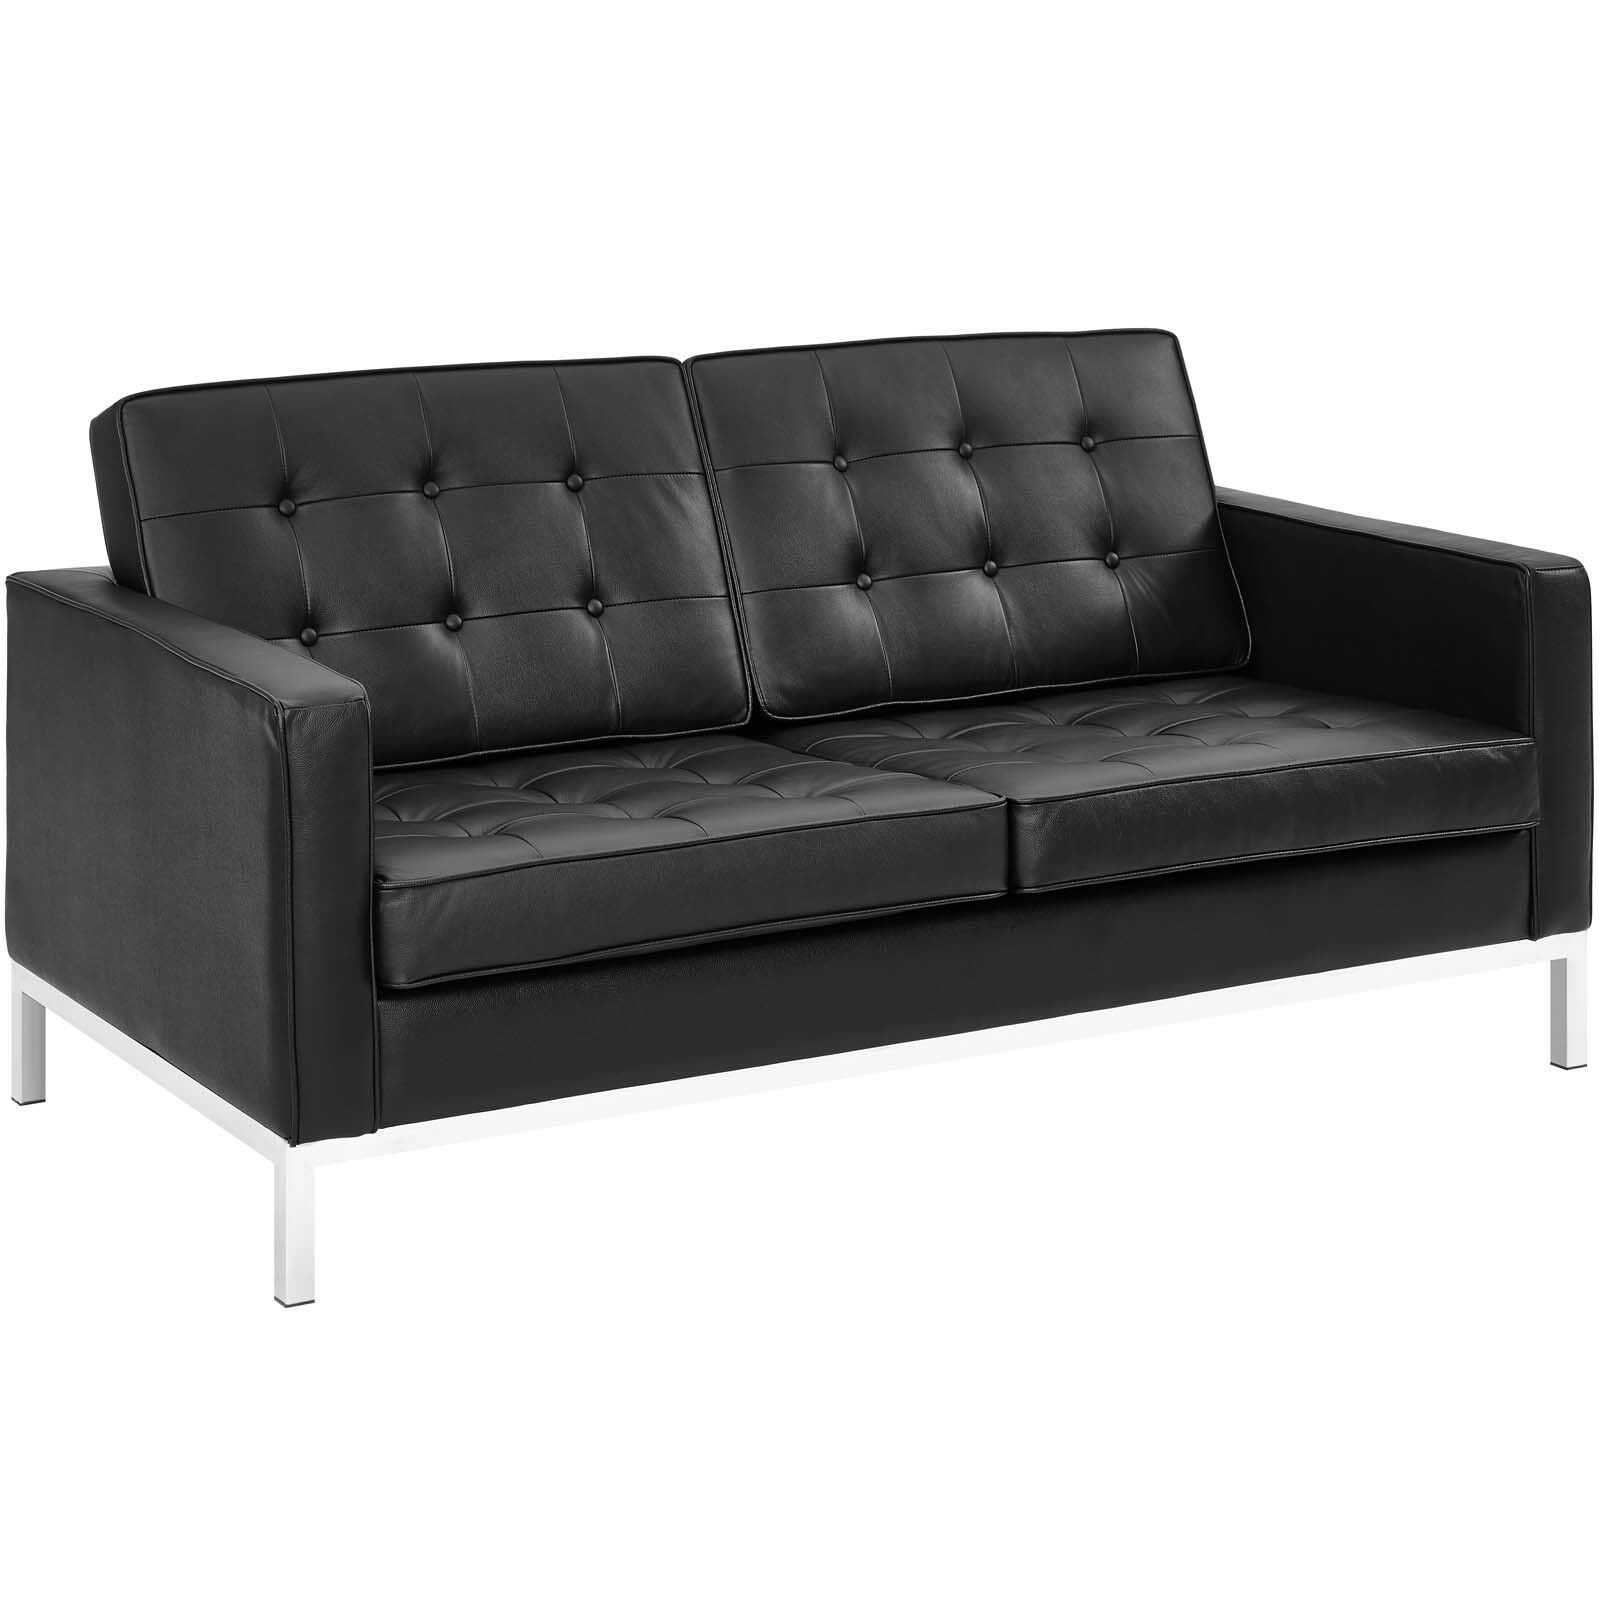 Leather Upholstered Lounge Mid Century Modern Tufted Leather Upholstered Lounge